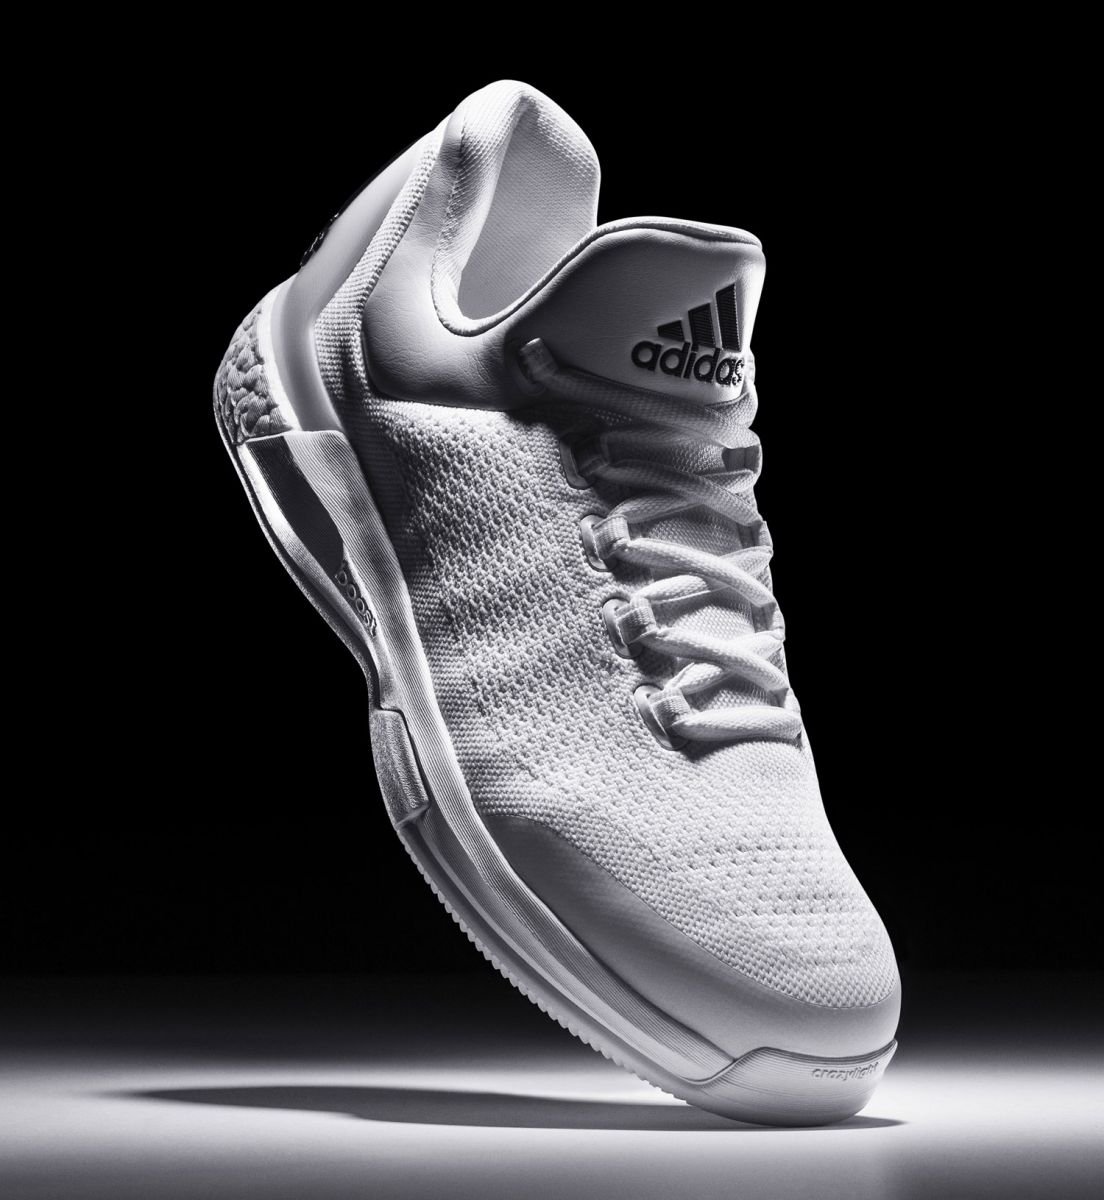 more photos 8e4ba 43d3e Adidas Is Only Releasing 100 Pairs of These James Harden Sneakers. Triple  White Crazylight Boosts.